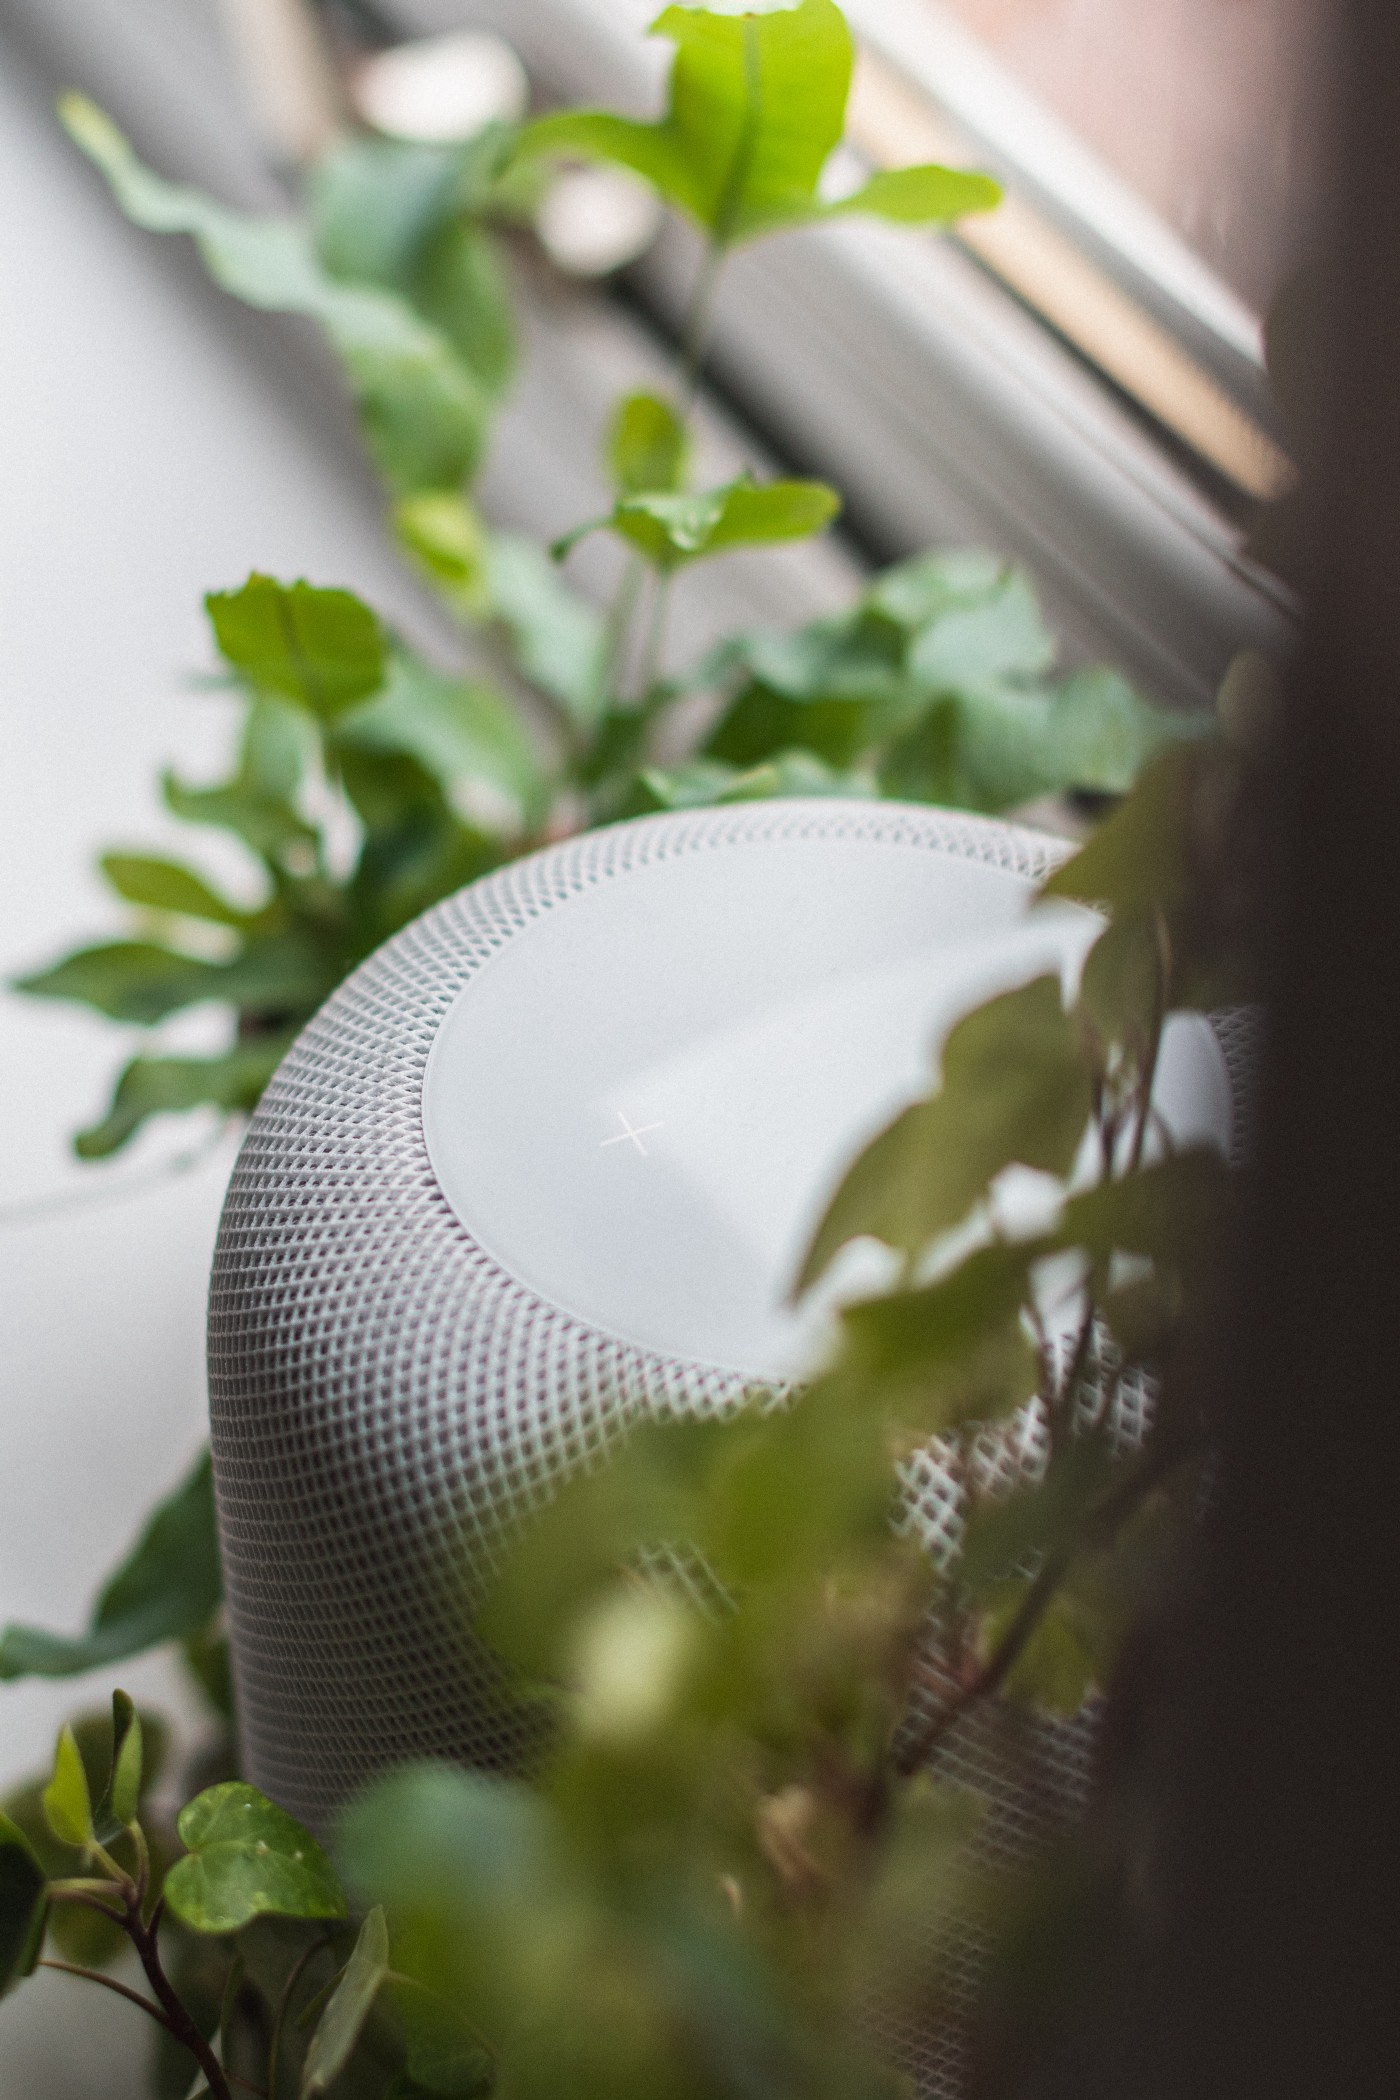 Homepod speaker surrounded by ivy